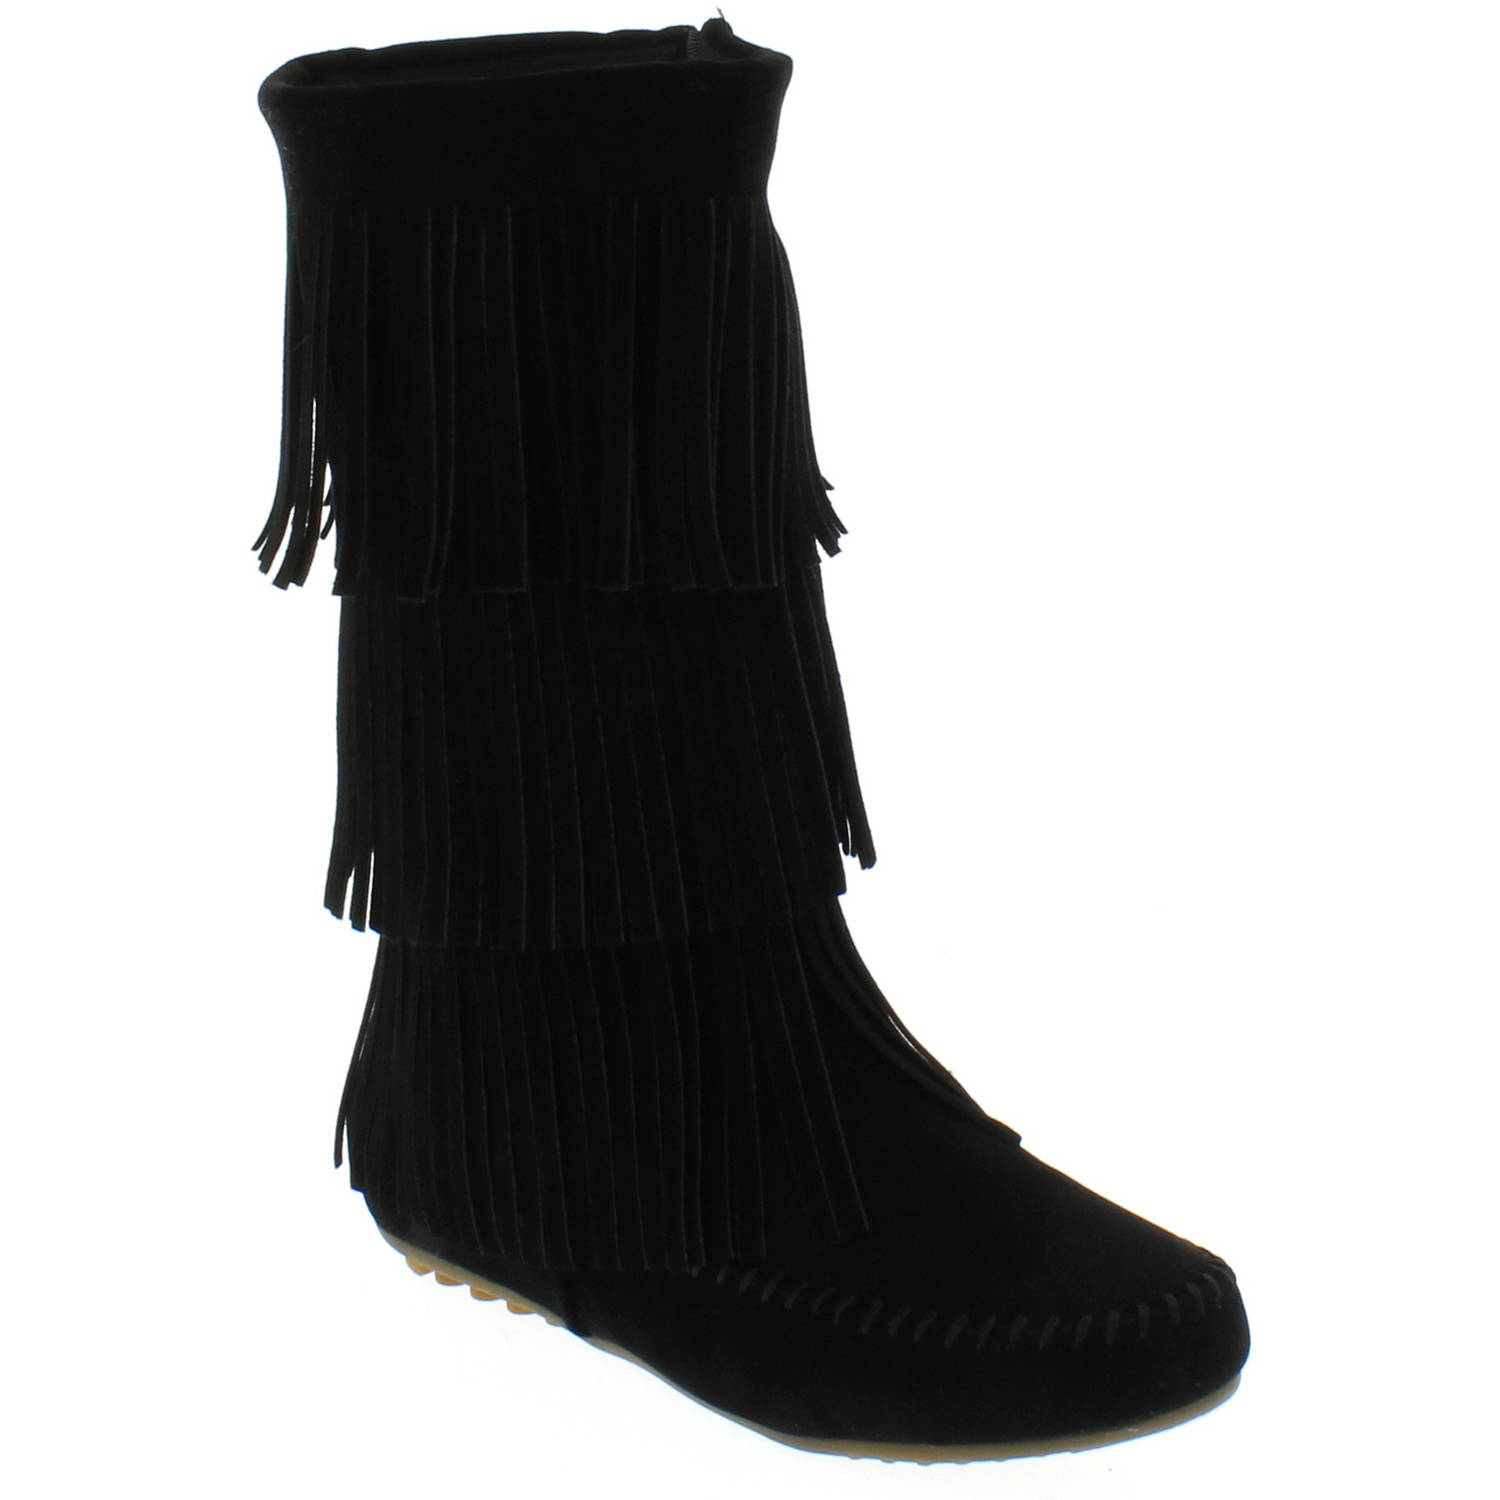 shoes of soul womenu0027s fringe boots - walmart.com ryhqpib